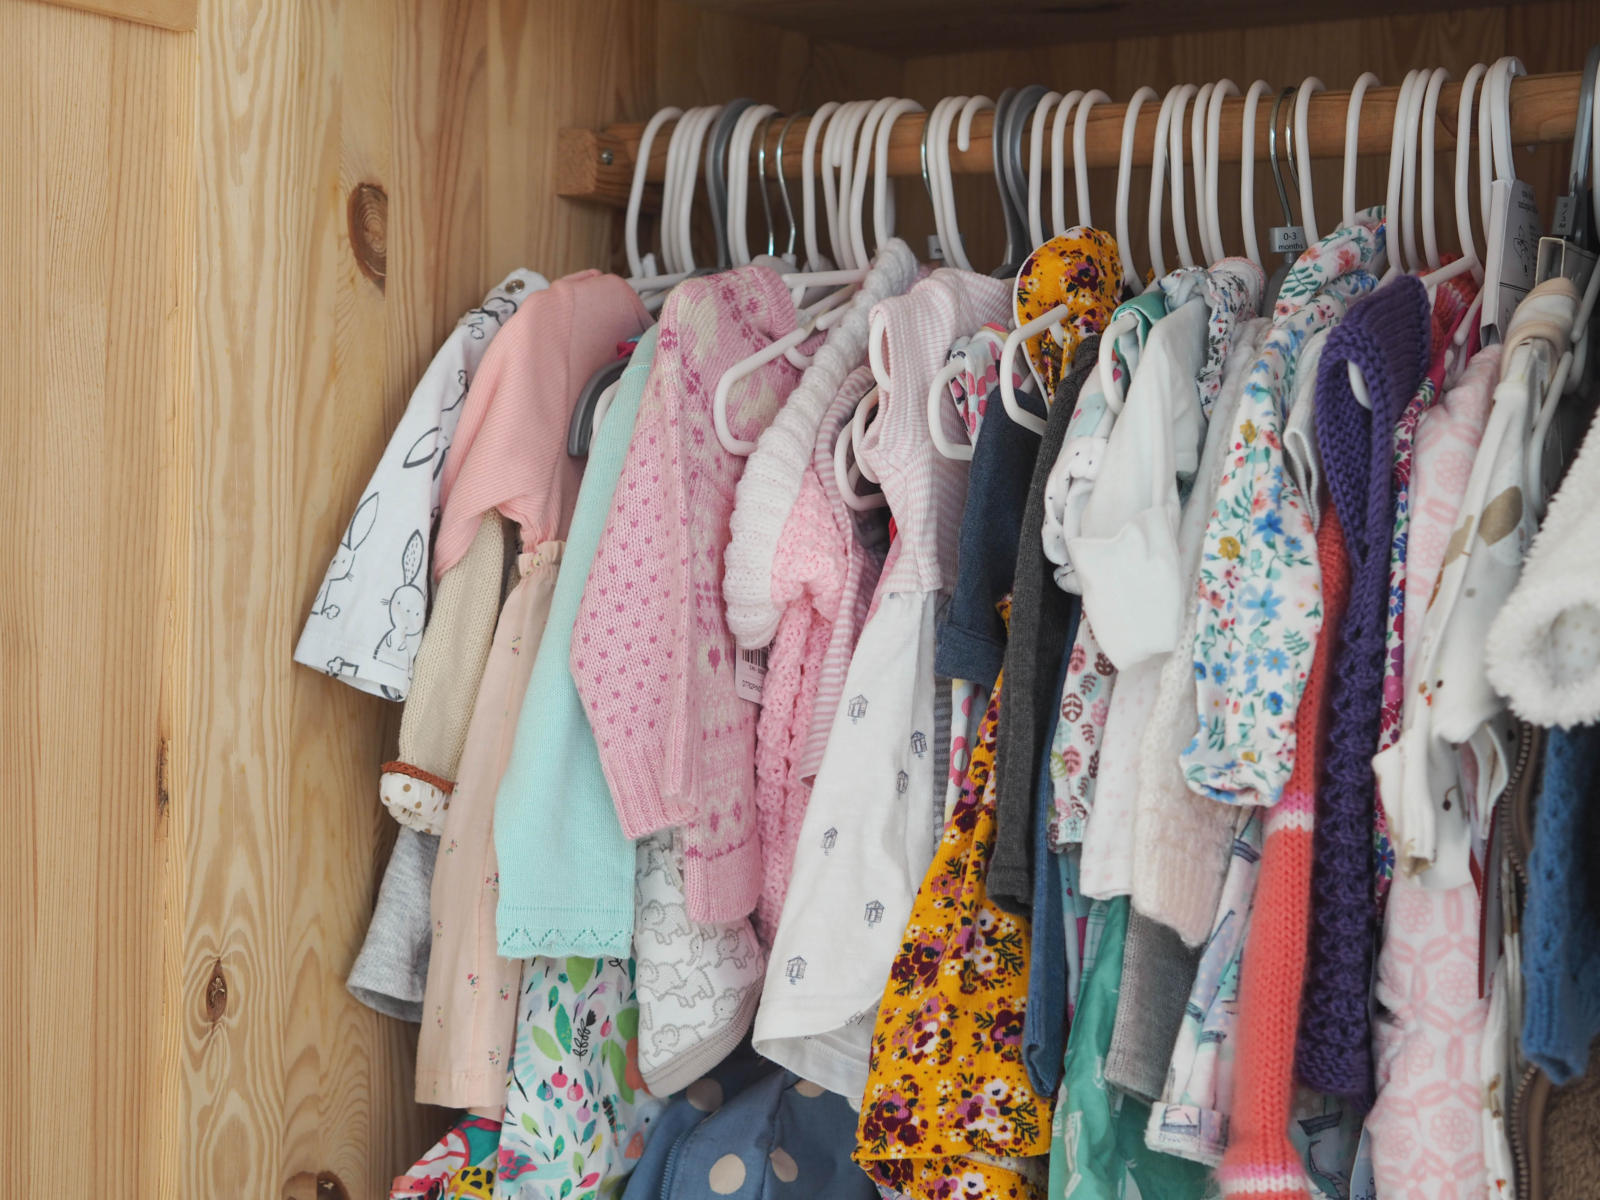 Baby clothes in the wardrobe